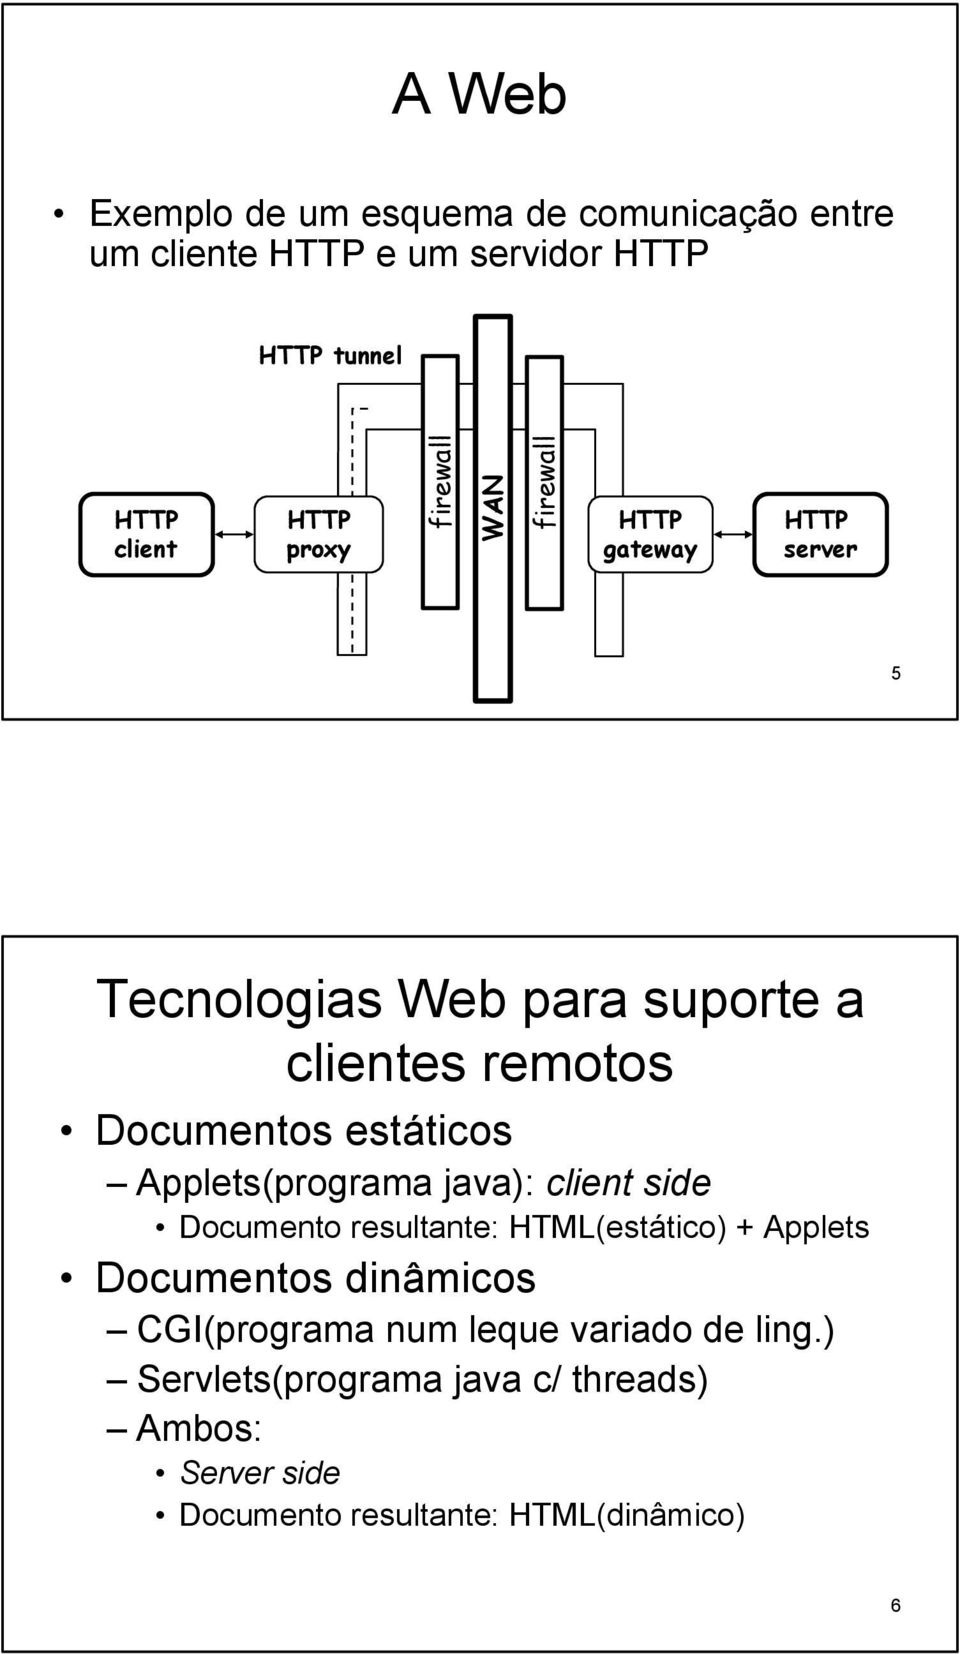 Applets(programa java): client side Documento resultante: HTML(estático) + Applets Documentos dinâmicos CGI(programa